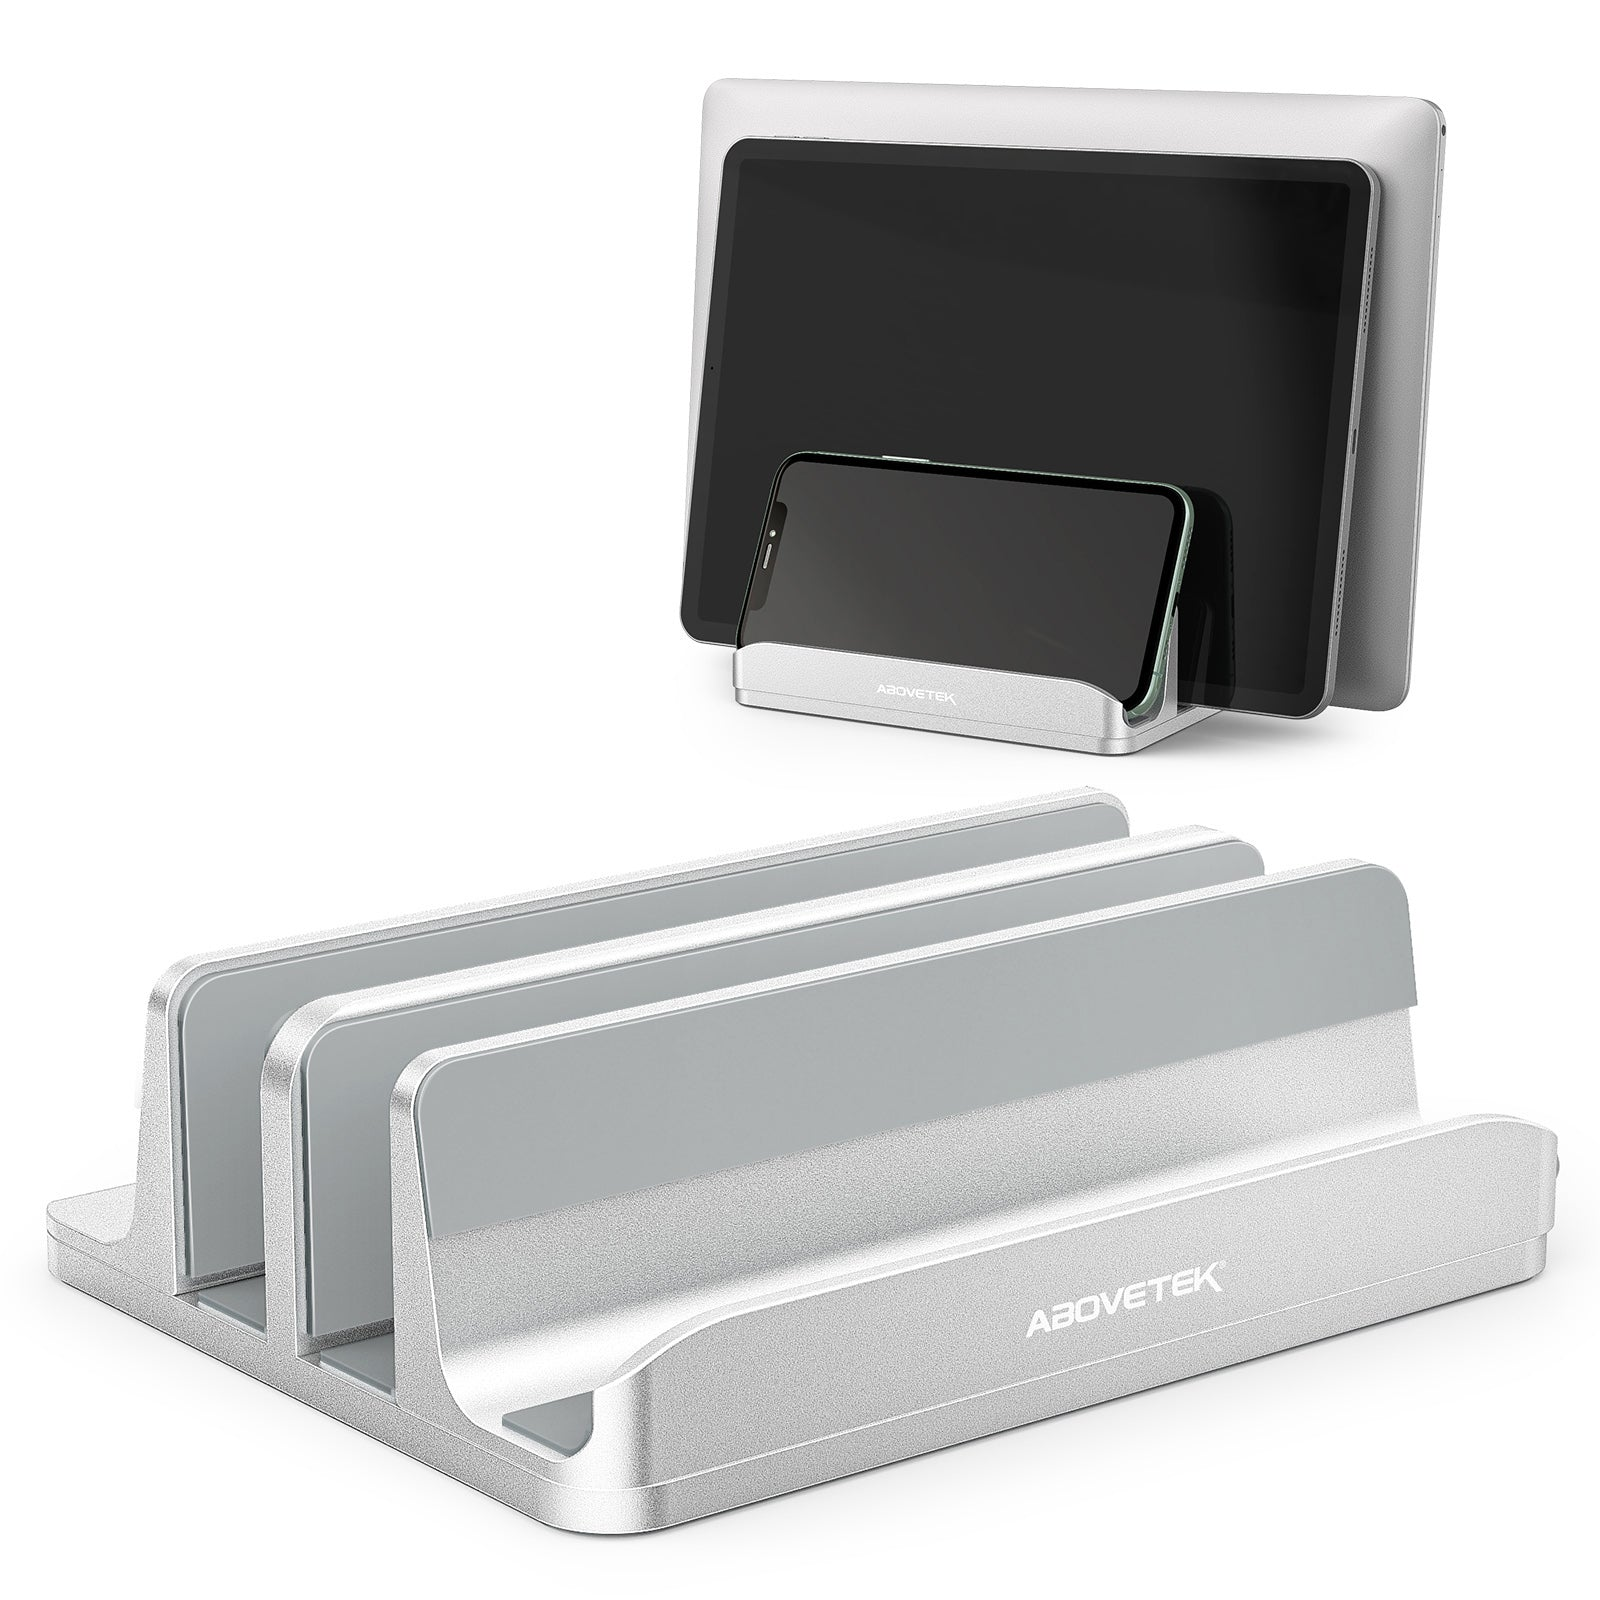 Vertical Laptop Stand - 3 Slots for Computer, Tablet, Phone (LH-21S)